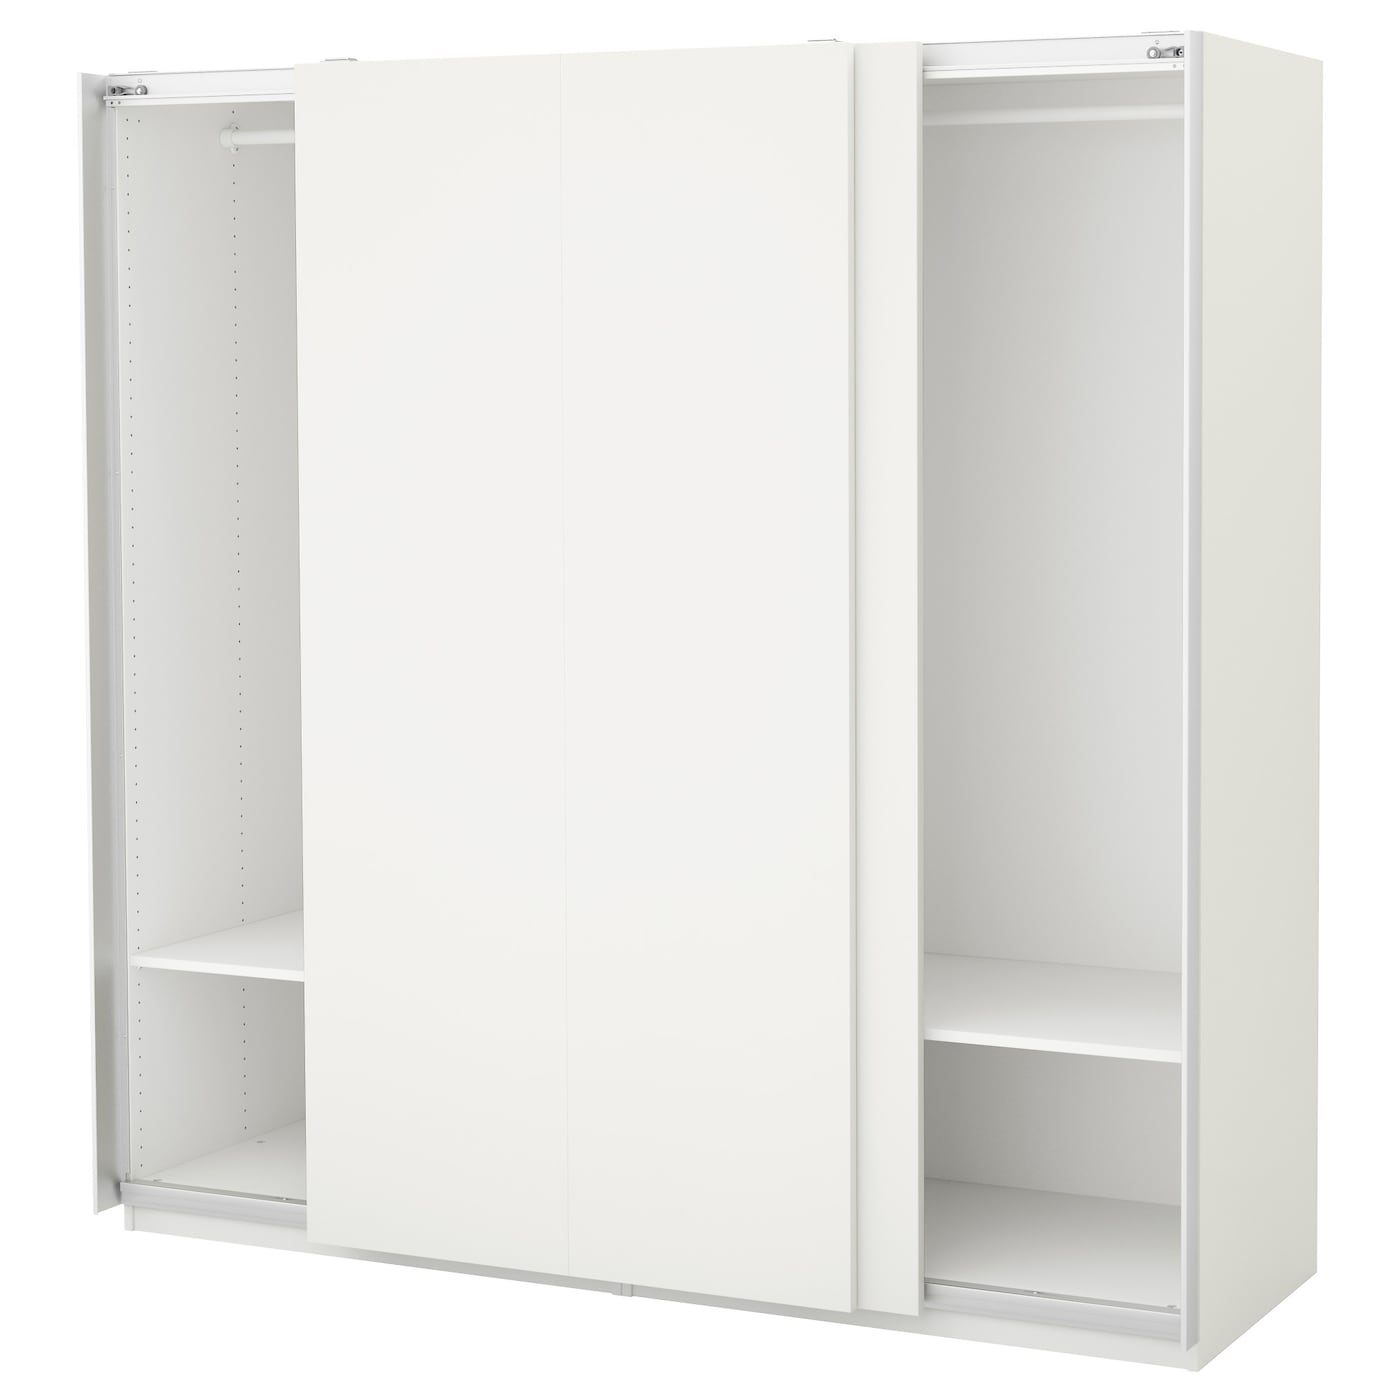 pax wardrobe white hasvik white 200x66x201 cm ikea. Black Bedroom Furniture Sets. Home Design Ideas